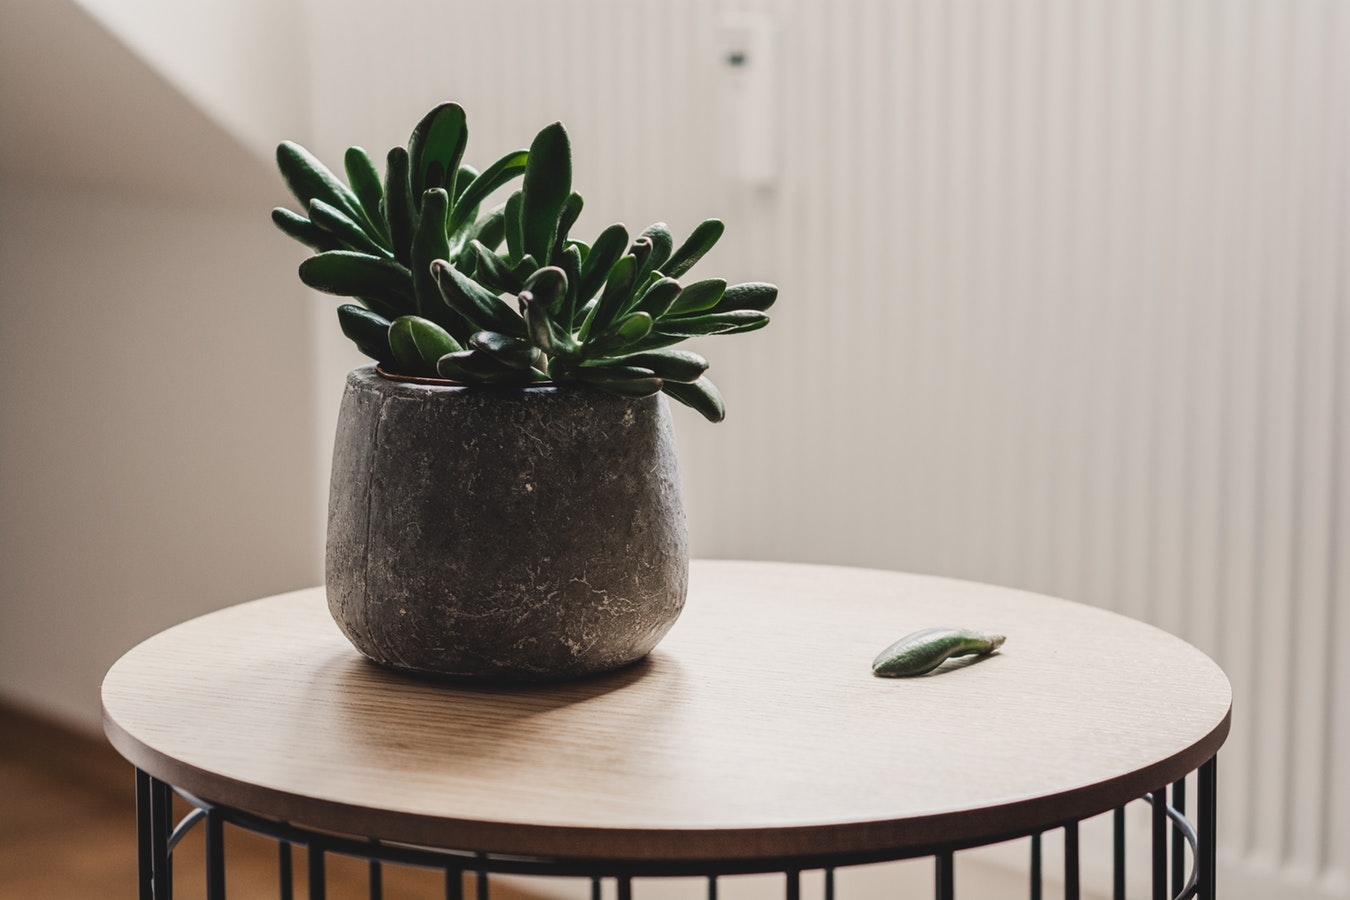 TOP 5 INDOOR PLANTS FOR LIMITED SPACE